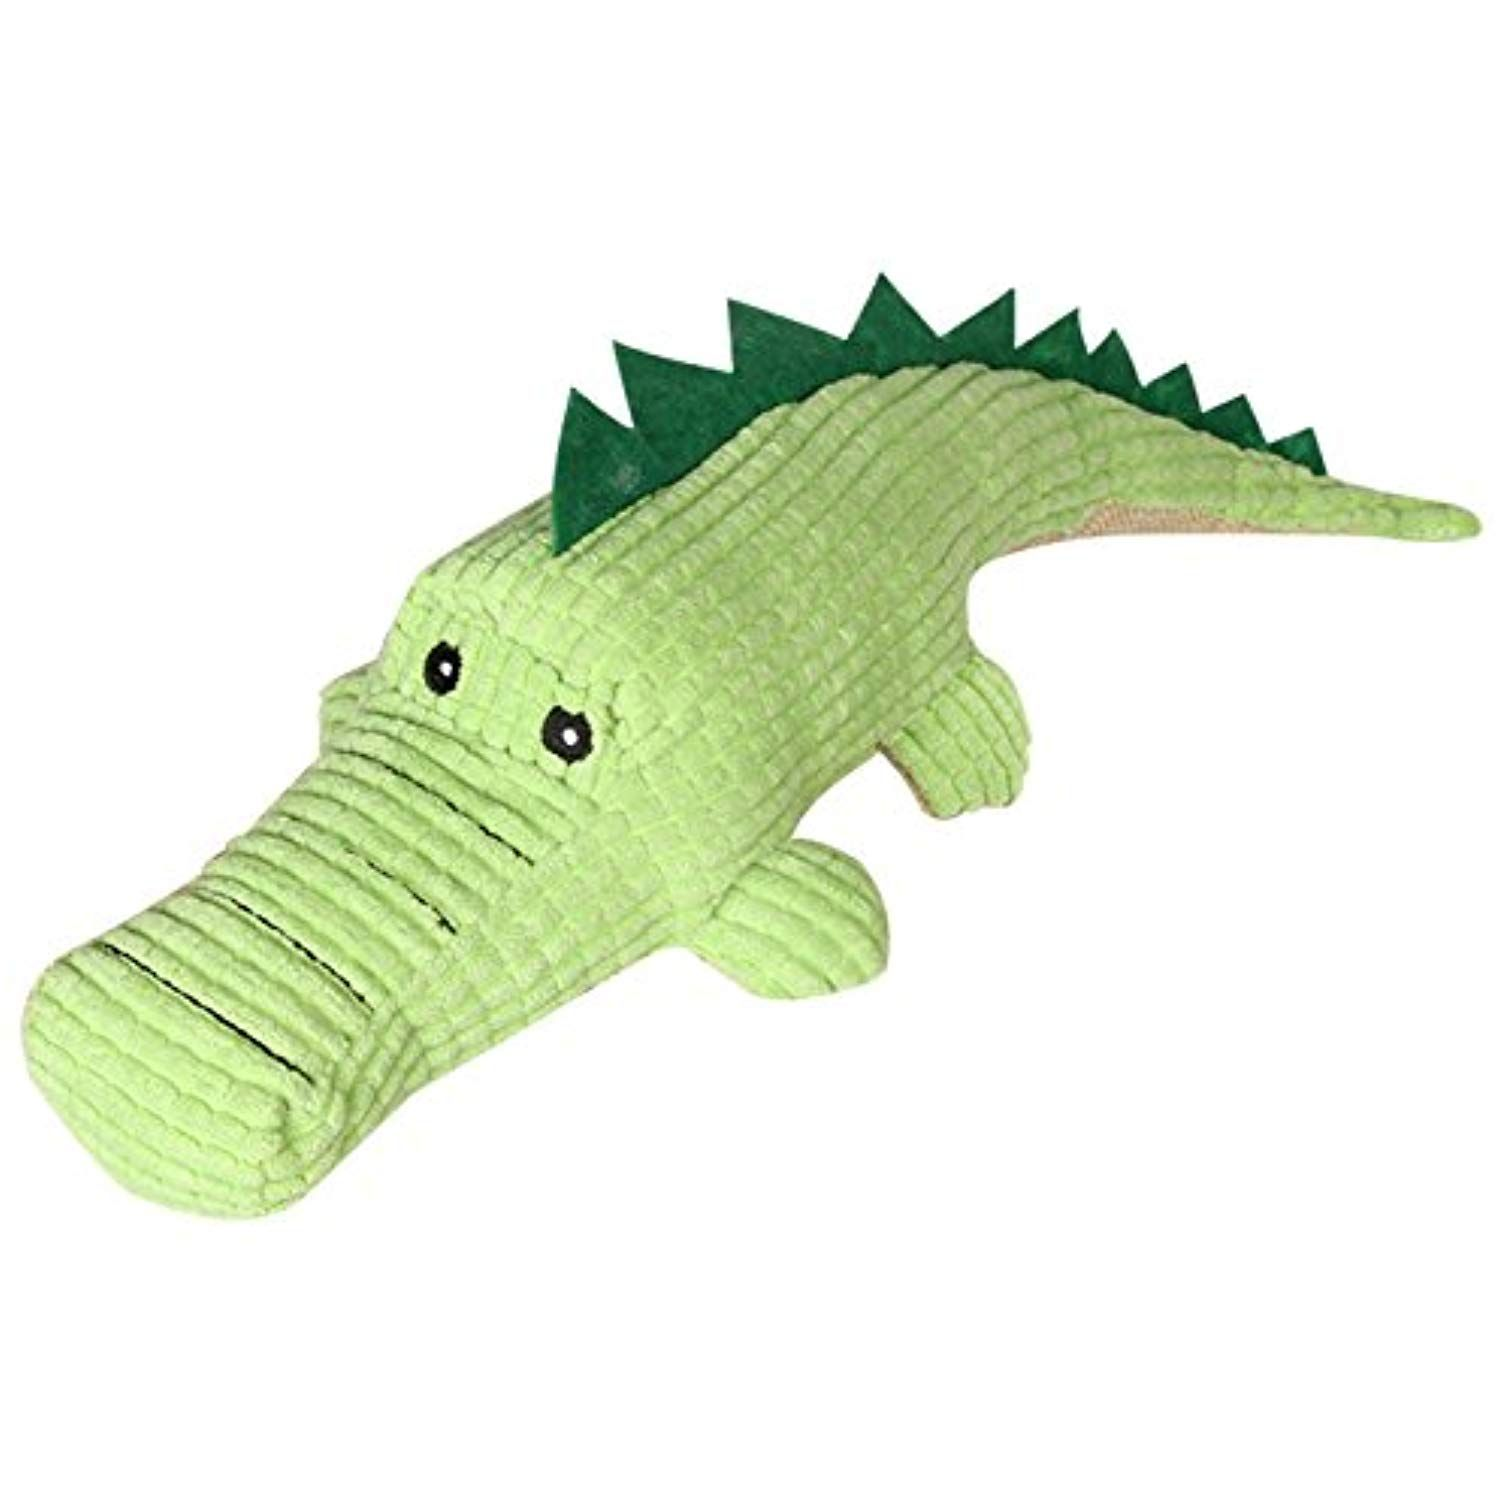 Aubig Crocodile Style Pet Durable Chewing Training Squeak Toy